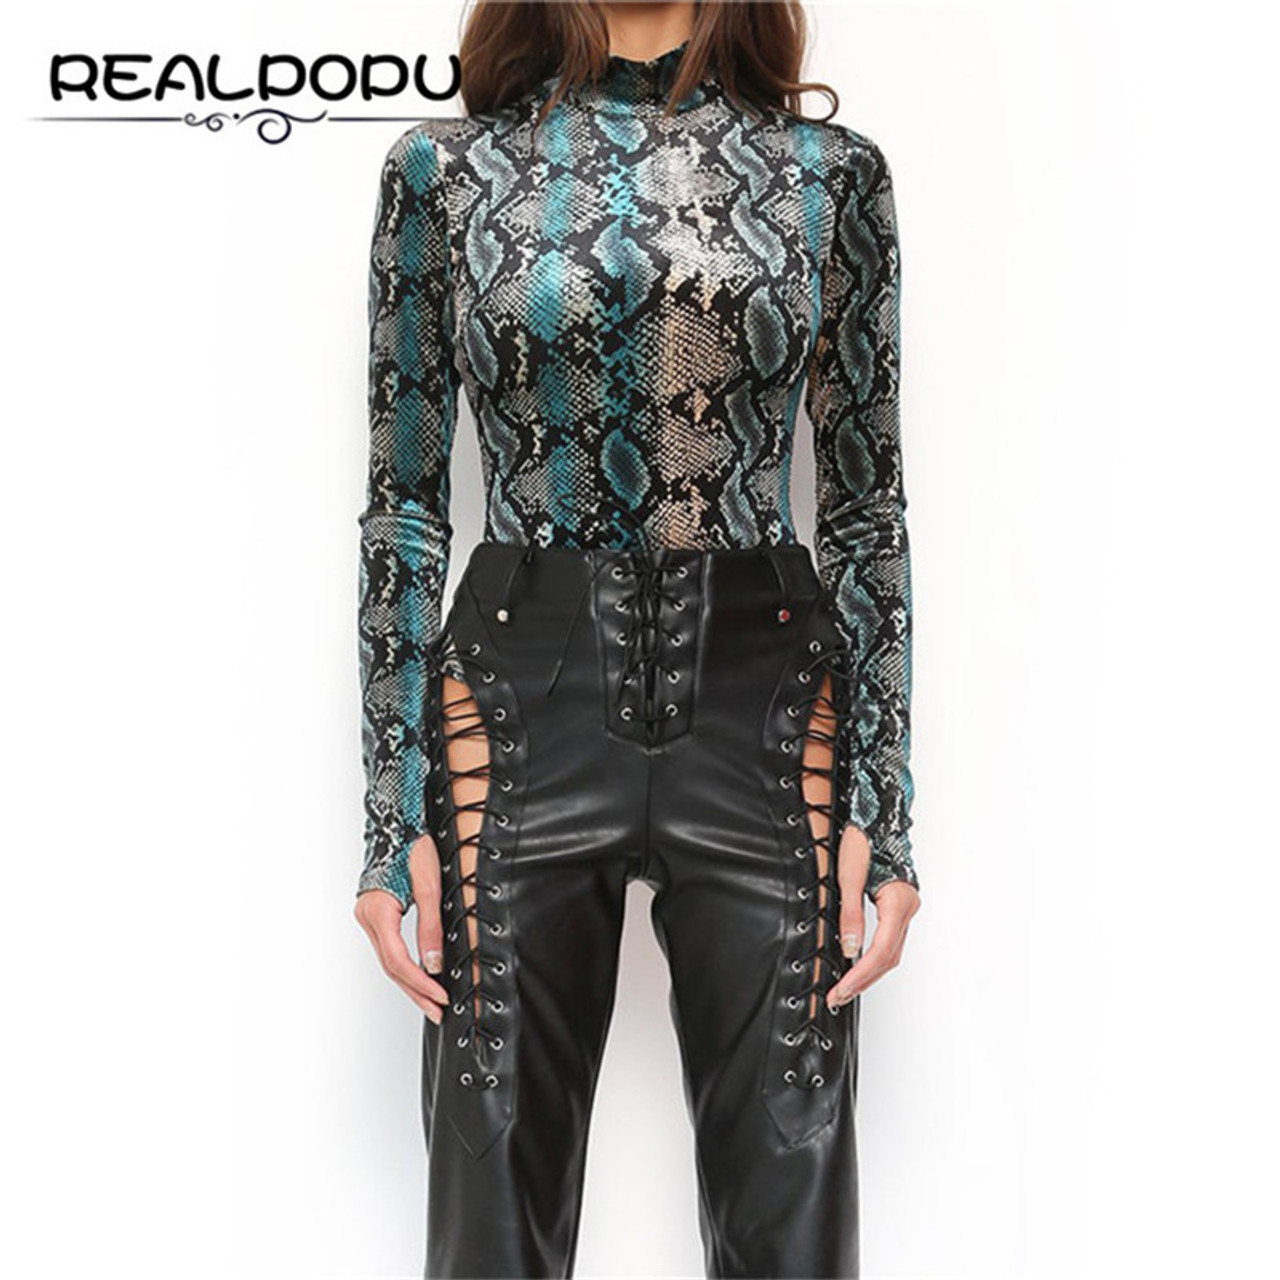 a6e84daffc7 ... Realpopu snake skin Turtleneck Long Sleeve Bodysuit Sexy Bodycon  Fashion Romper Womens Jumpsuit Overall Knitted Combinaison ...